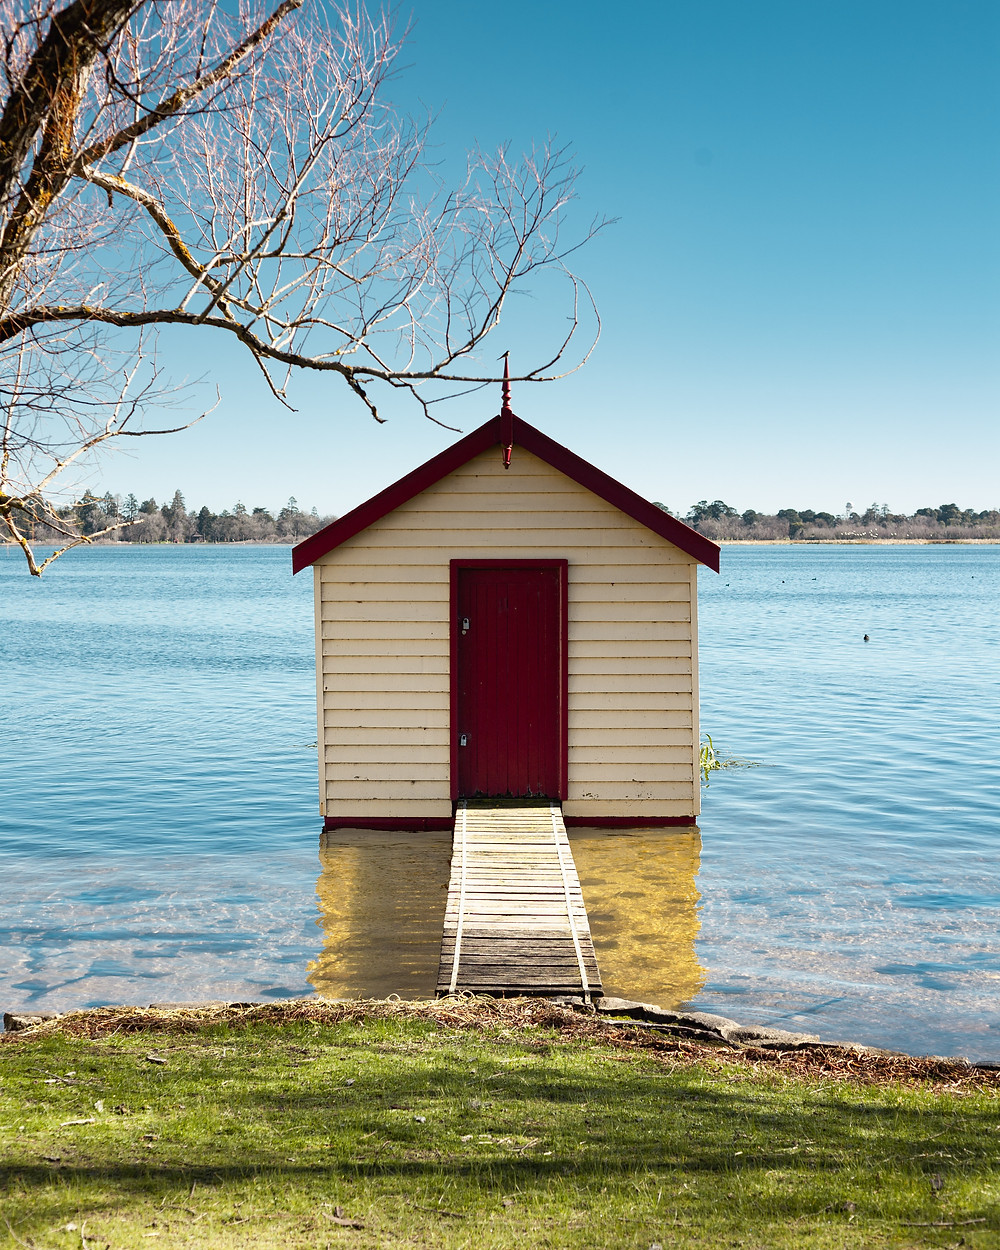 a simple wooden shed built on a water lake